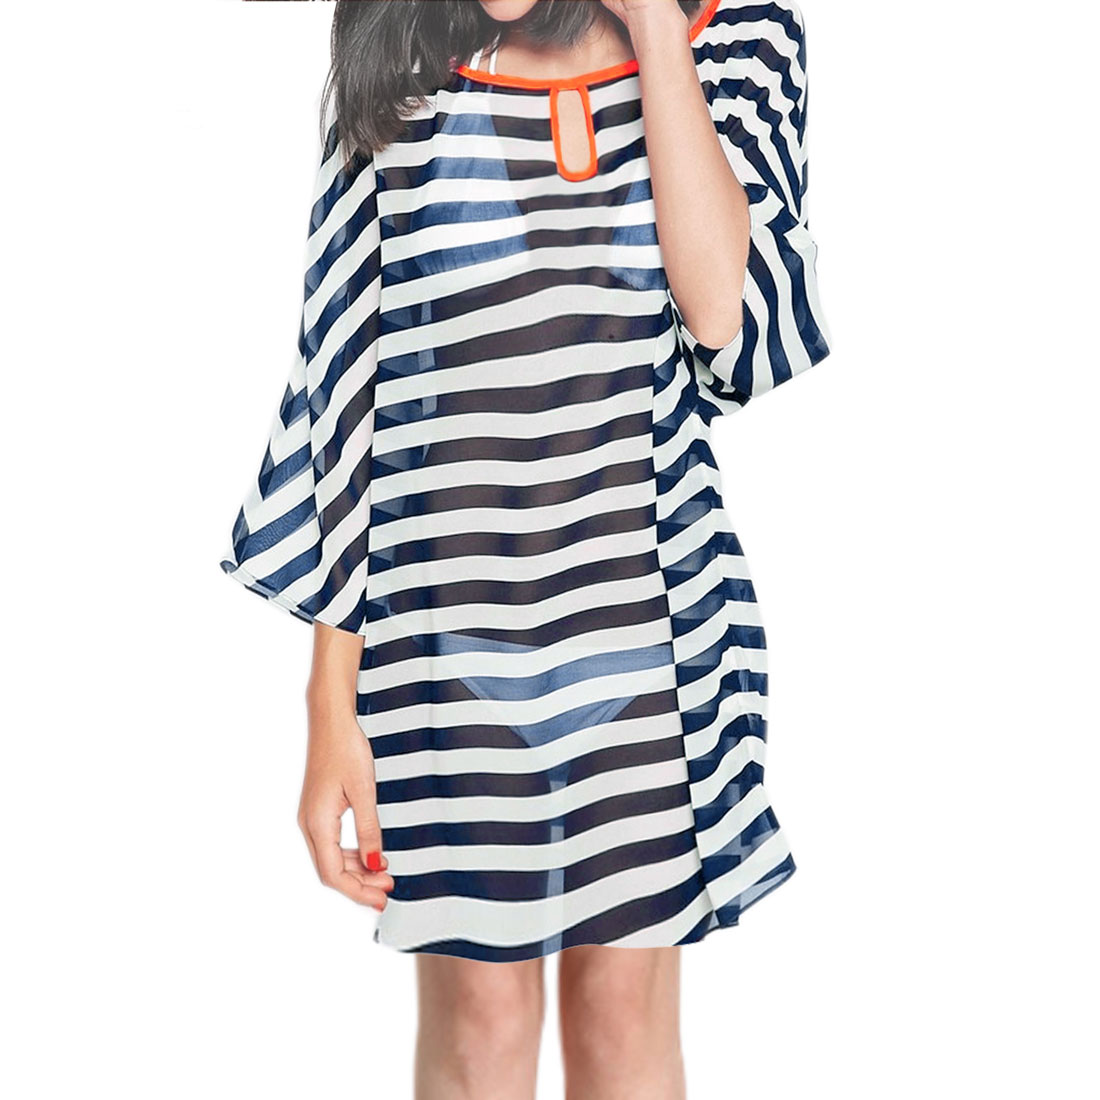 Women's Keyhole Front See Through Loose Stripes Chiffon Dress Blue (Size M / 8)